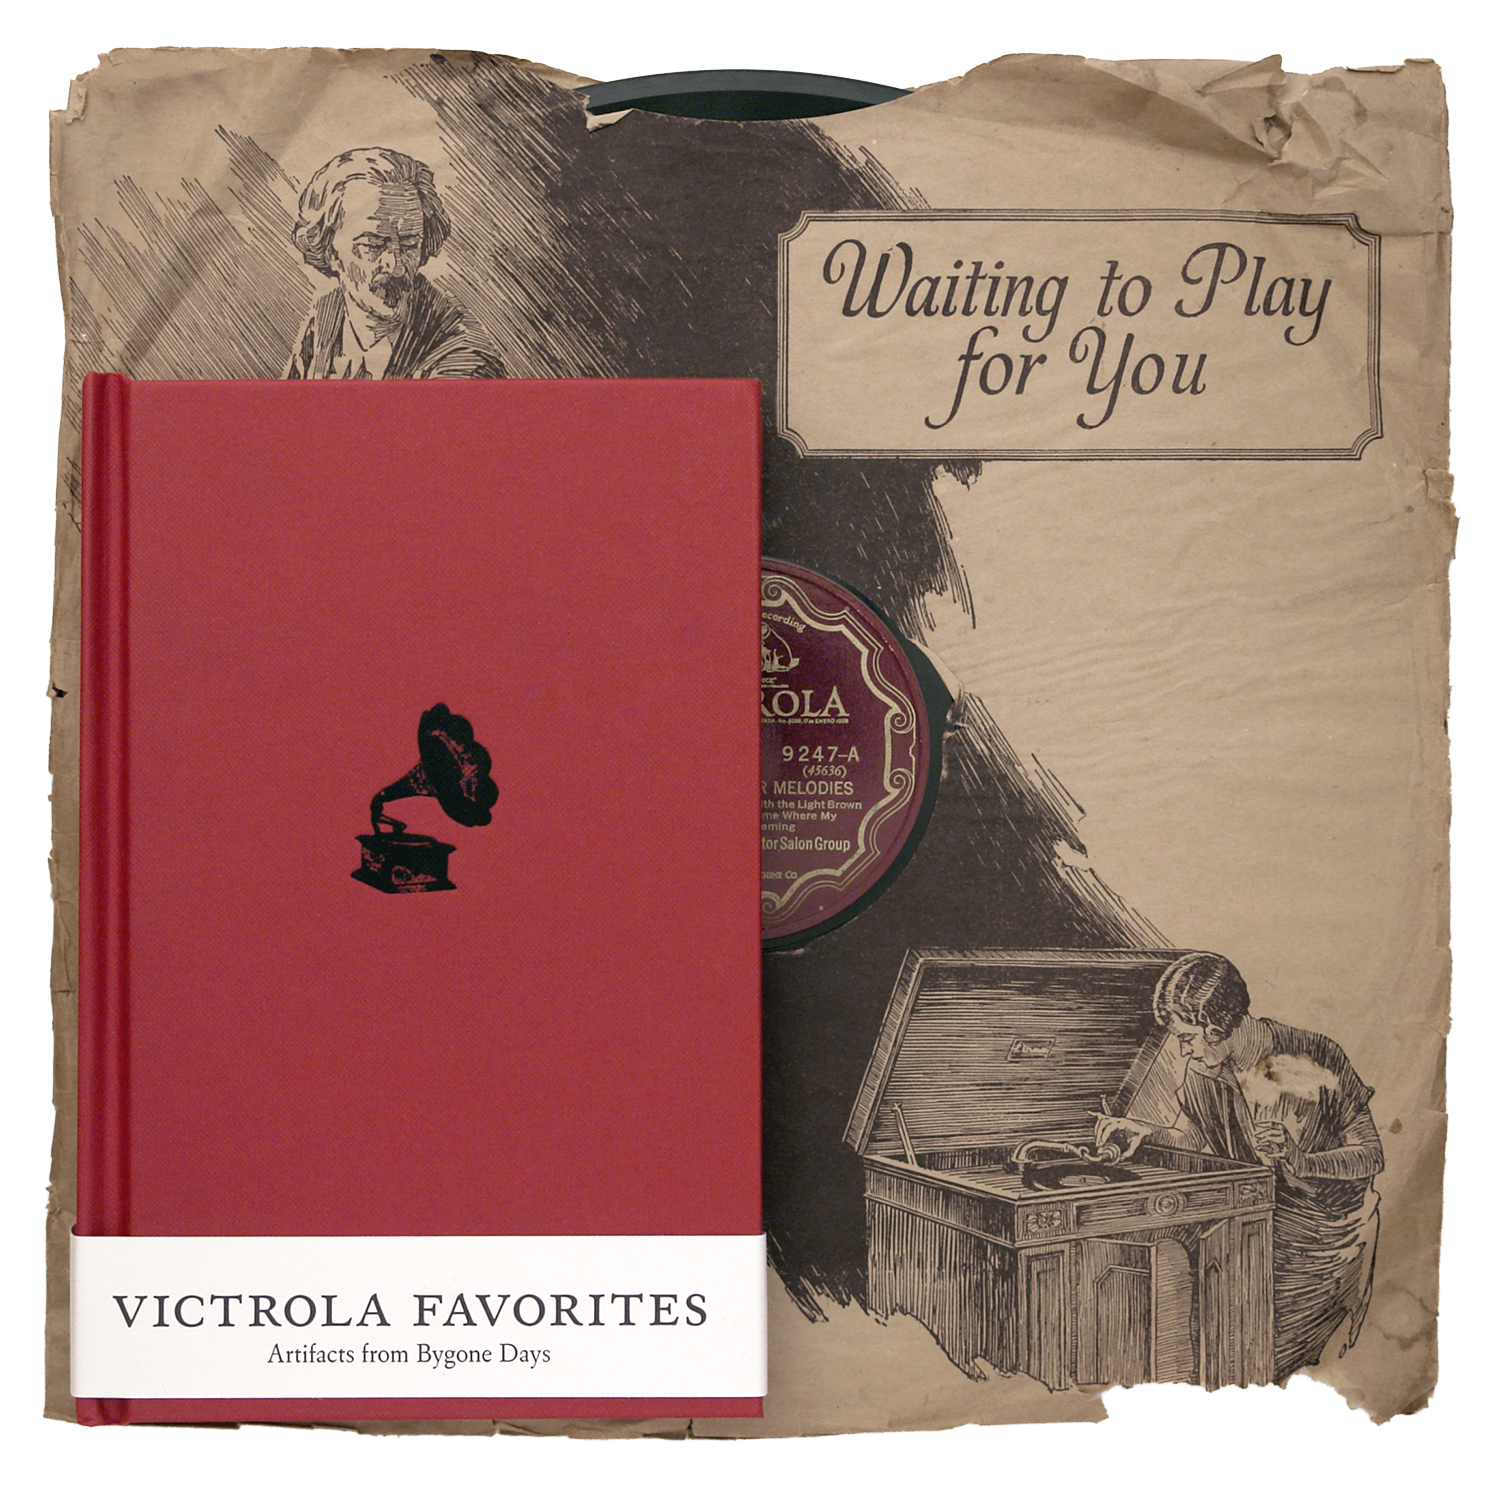 Victrola Favorites, Robert Millis and Jeffery Taylor, 144-page hardcover book with 2CDs, Dust-to-Digital, DTD-11. 2007 (12-inch 78 rpm not included)